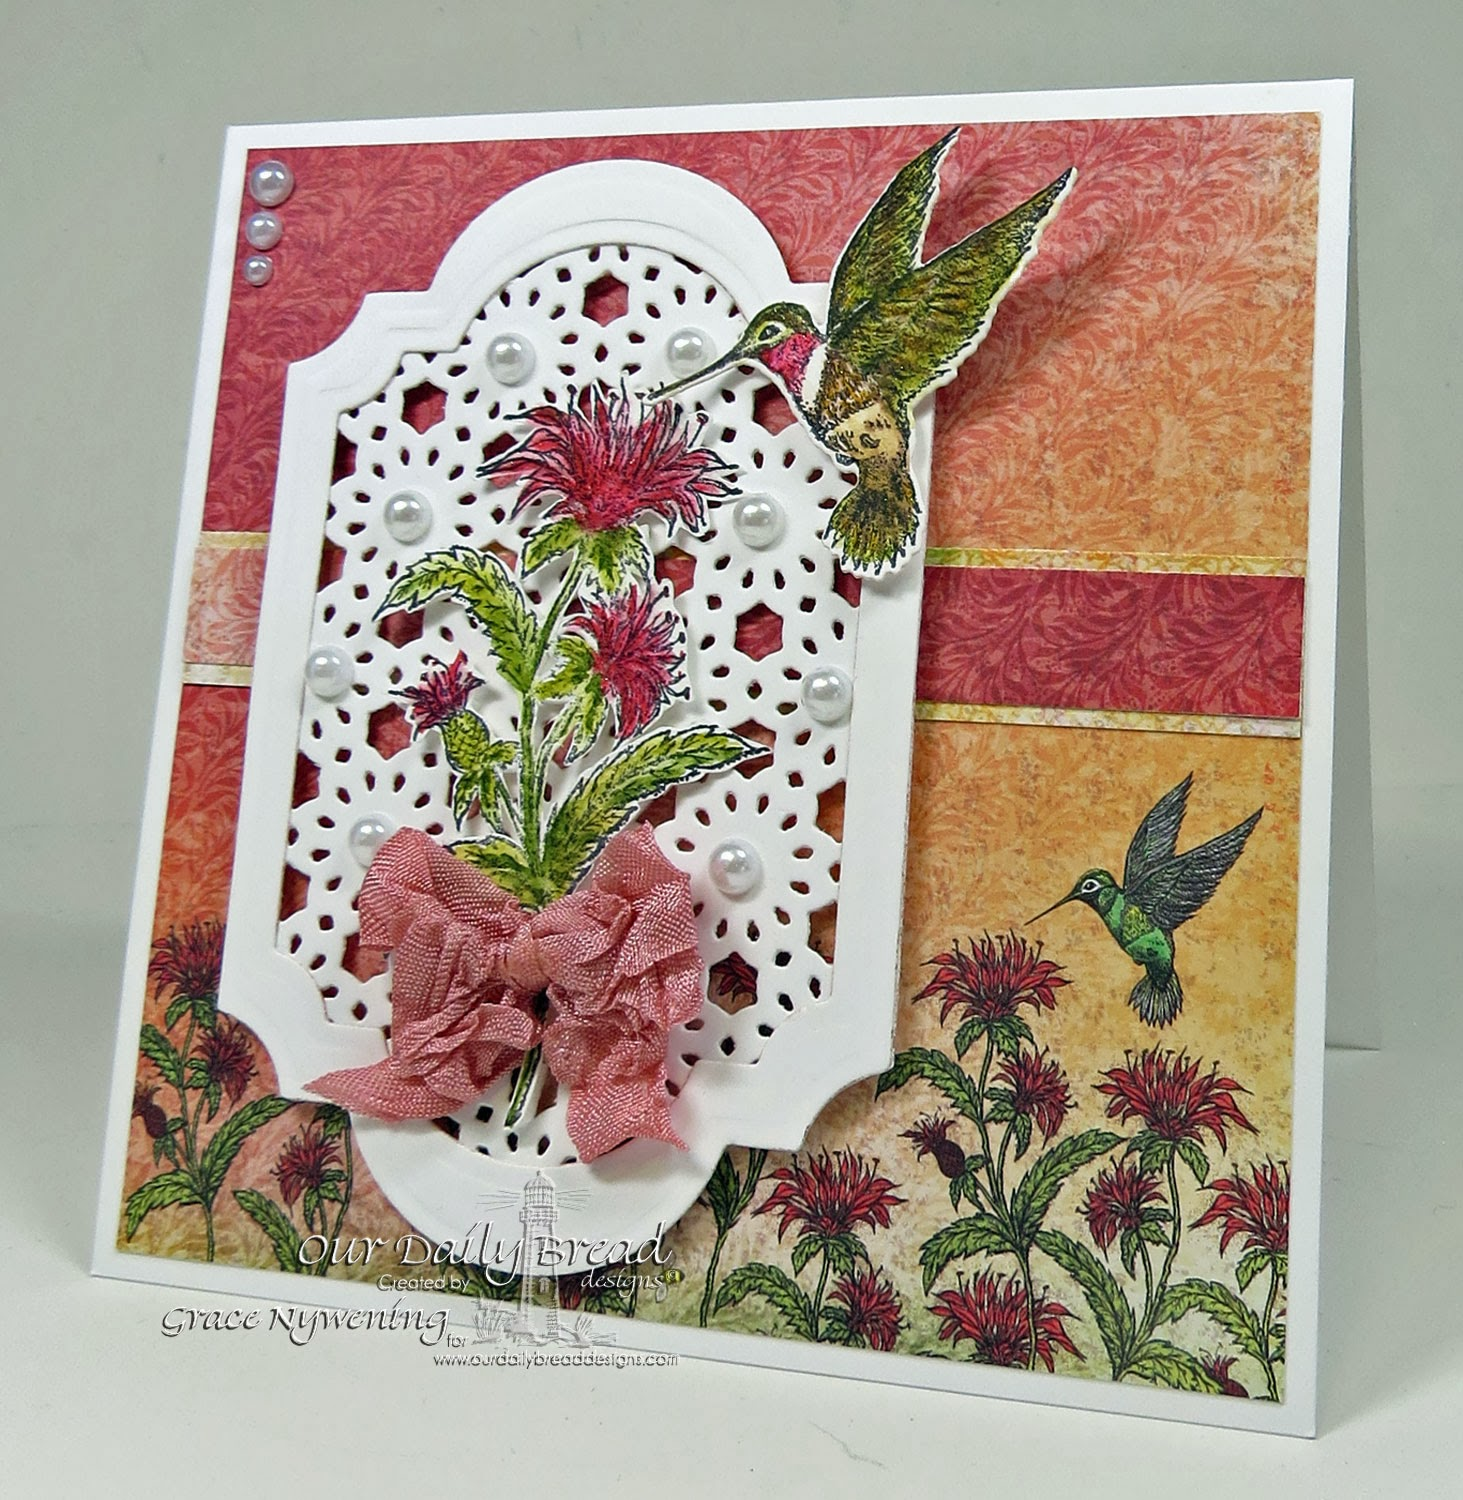 ODBD Stamps: Hummingbird, BeeBalm, designed by Grace Nywening